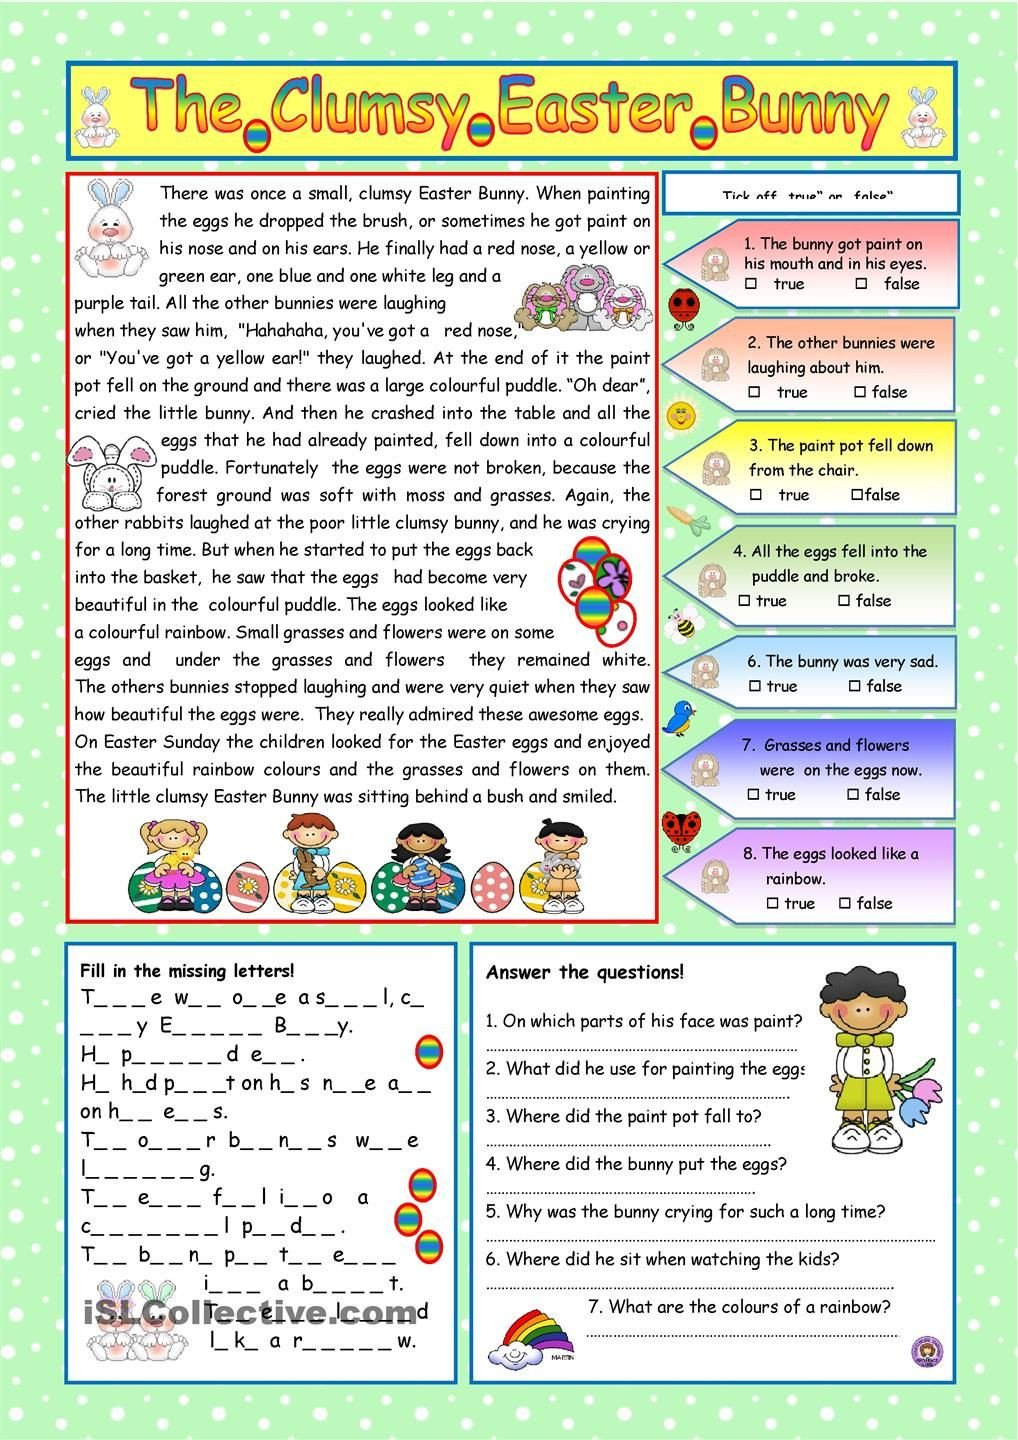 Free Printable Dog Training Worksheets the Clumsy Easter Bunny Included Reading Prehension